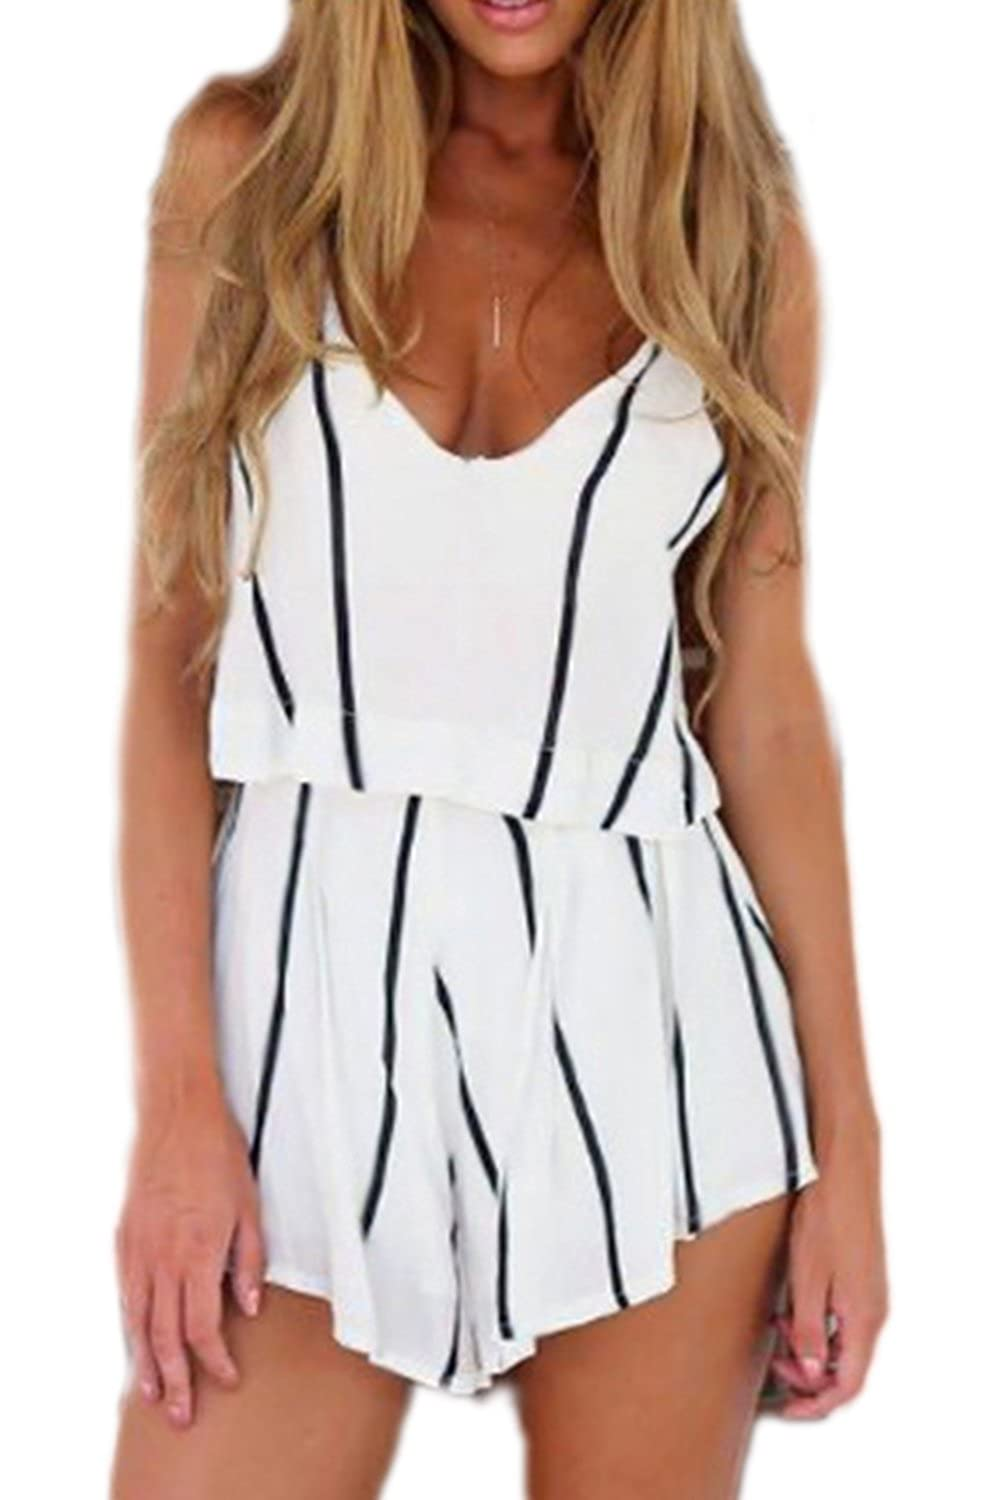 Vemubapis Women's Sleeveless Stripes Cami Shirts Shorts Beach Sets CAANYLS03